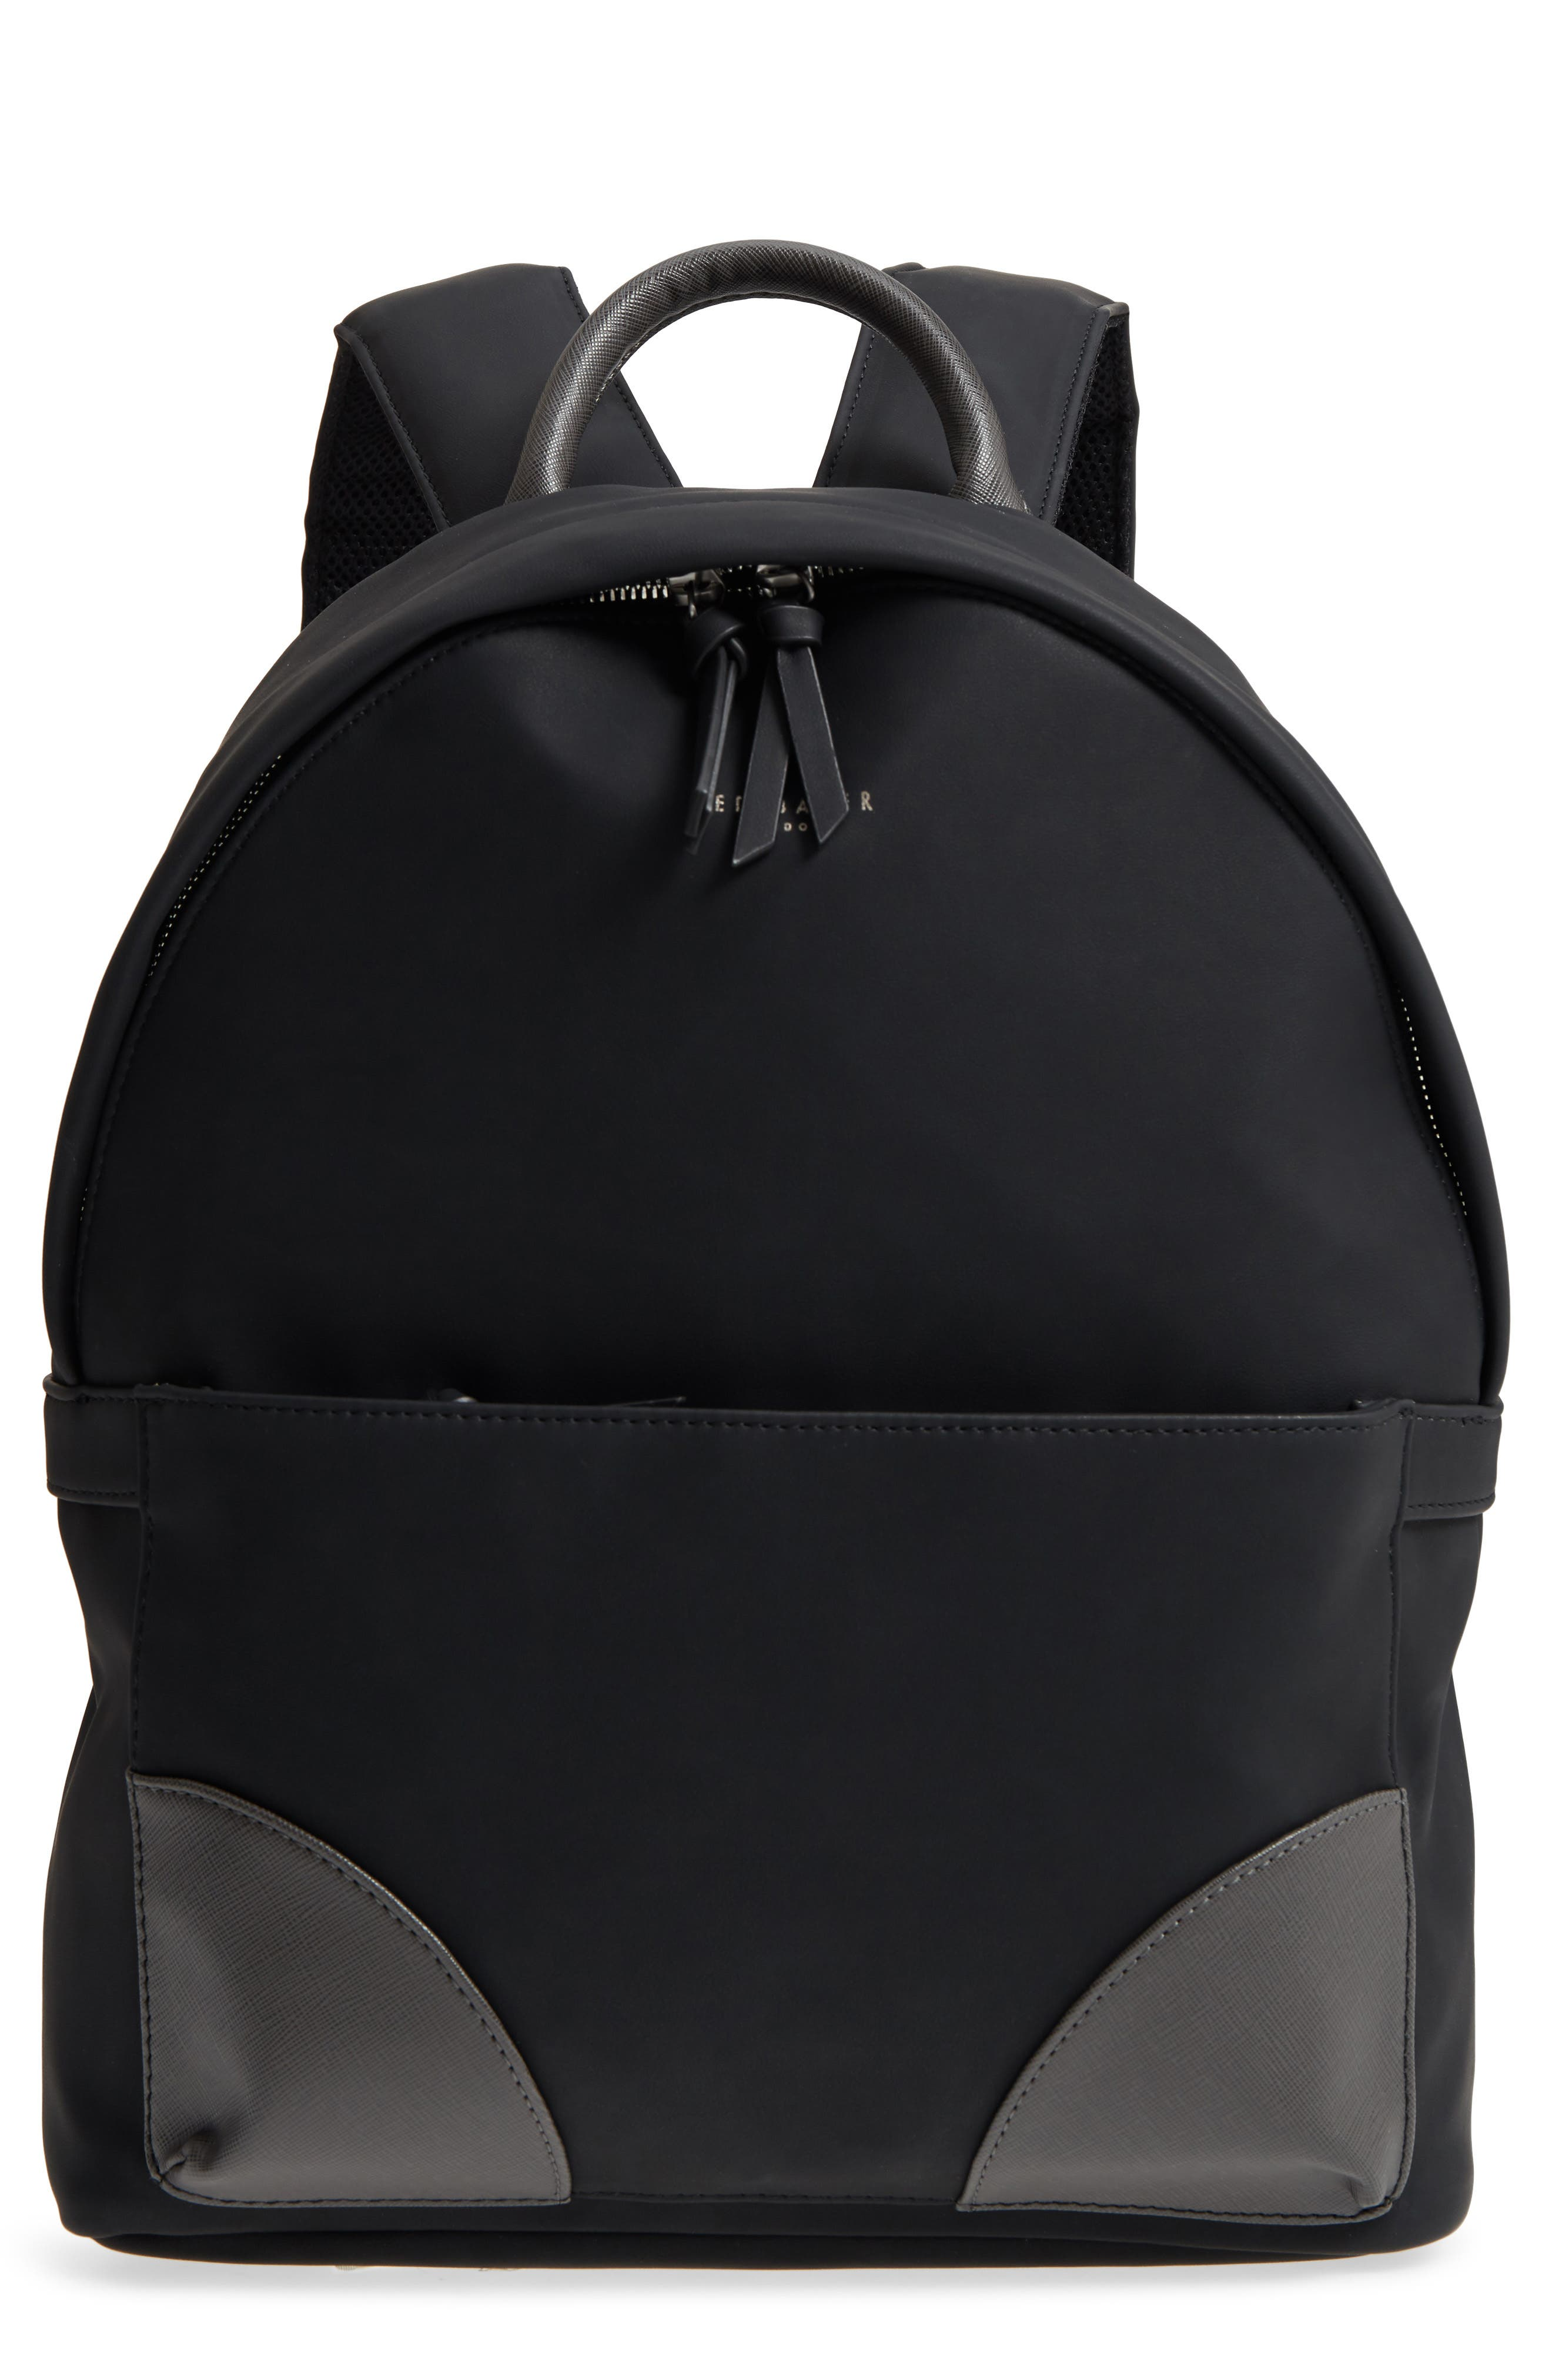 Passed Faux Leather Backpack,                             Main thumbnail 1, color,                             Black